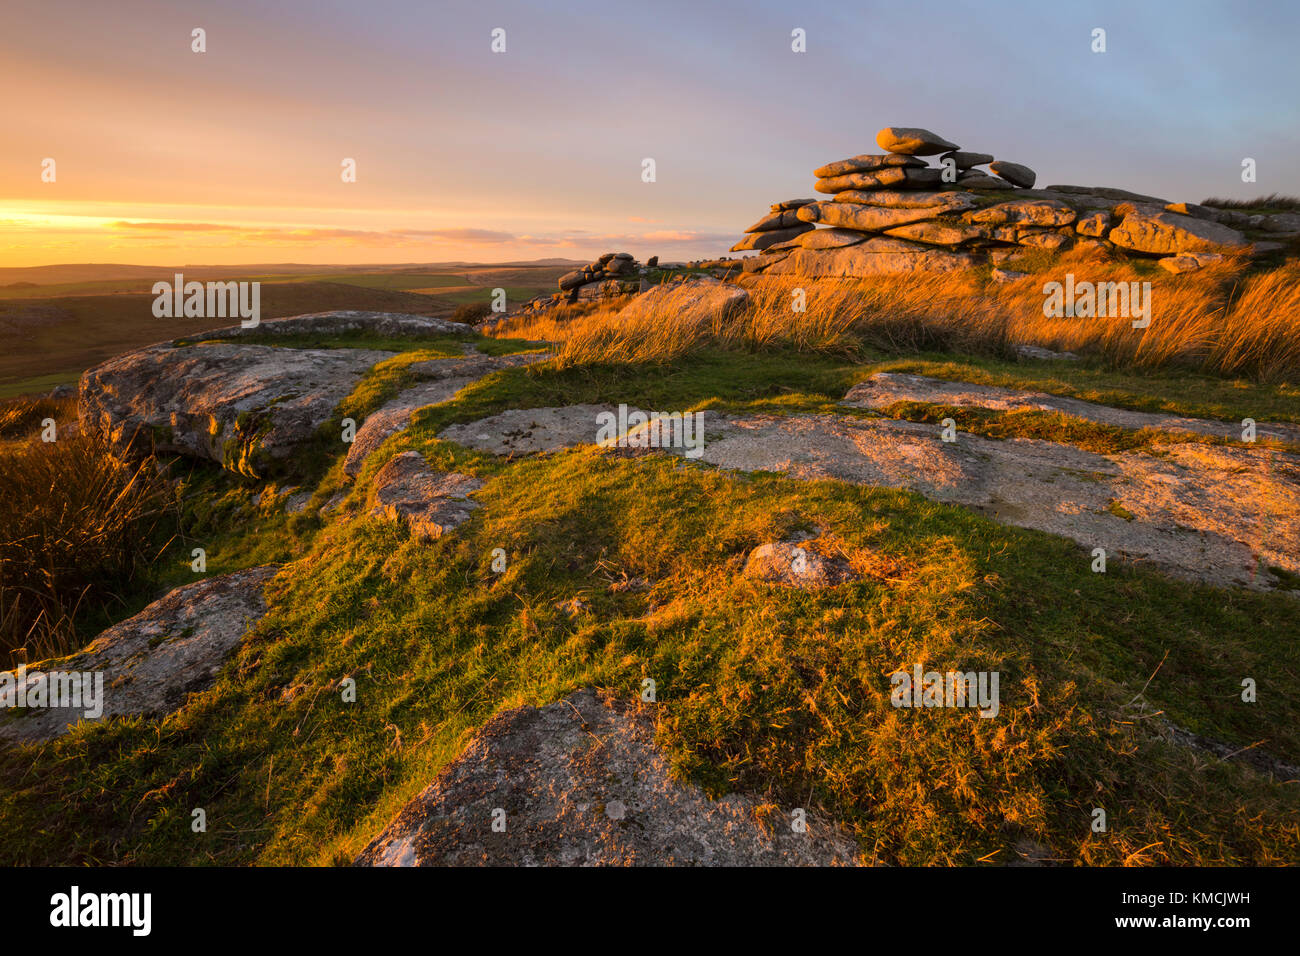 Warm evening light at sundown on the top of Stowes Hill on Bodmin Moor near Minions - Stock Image